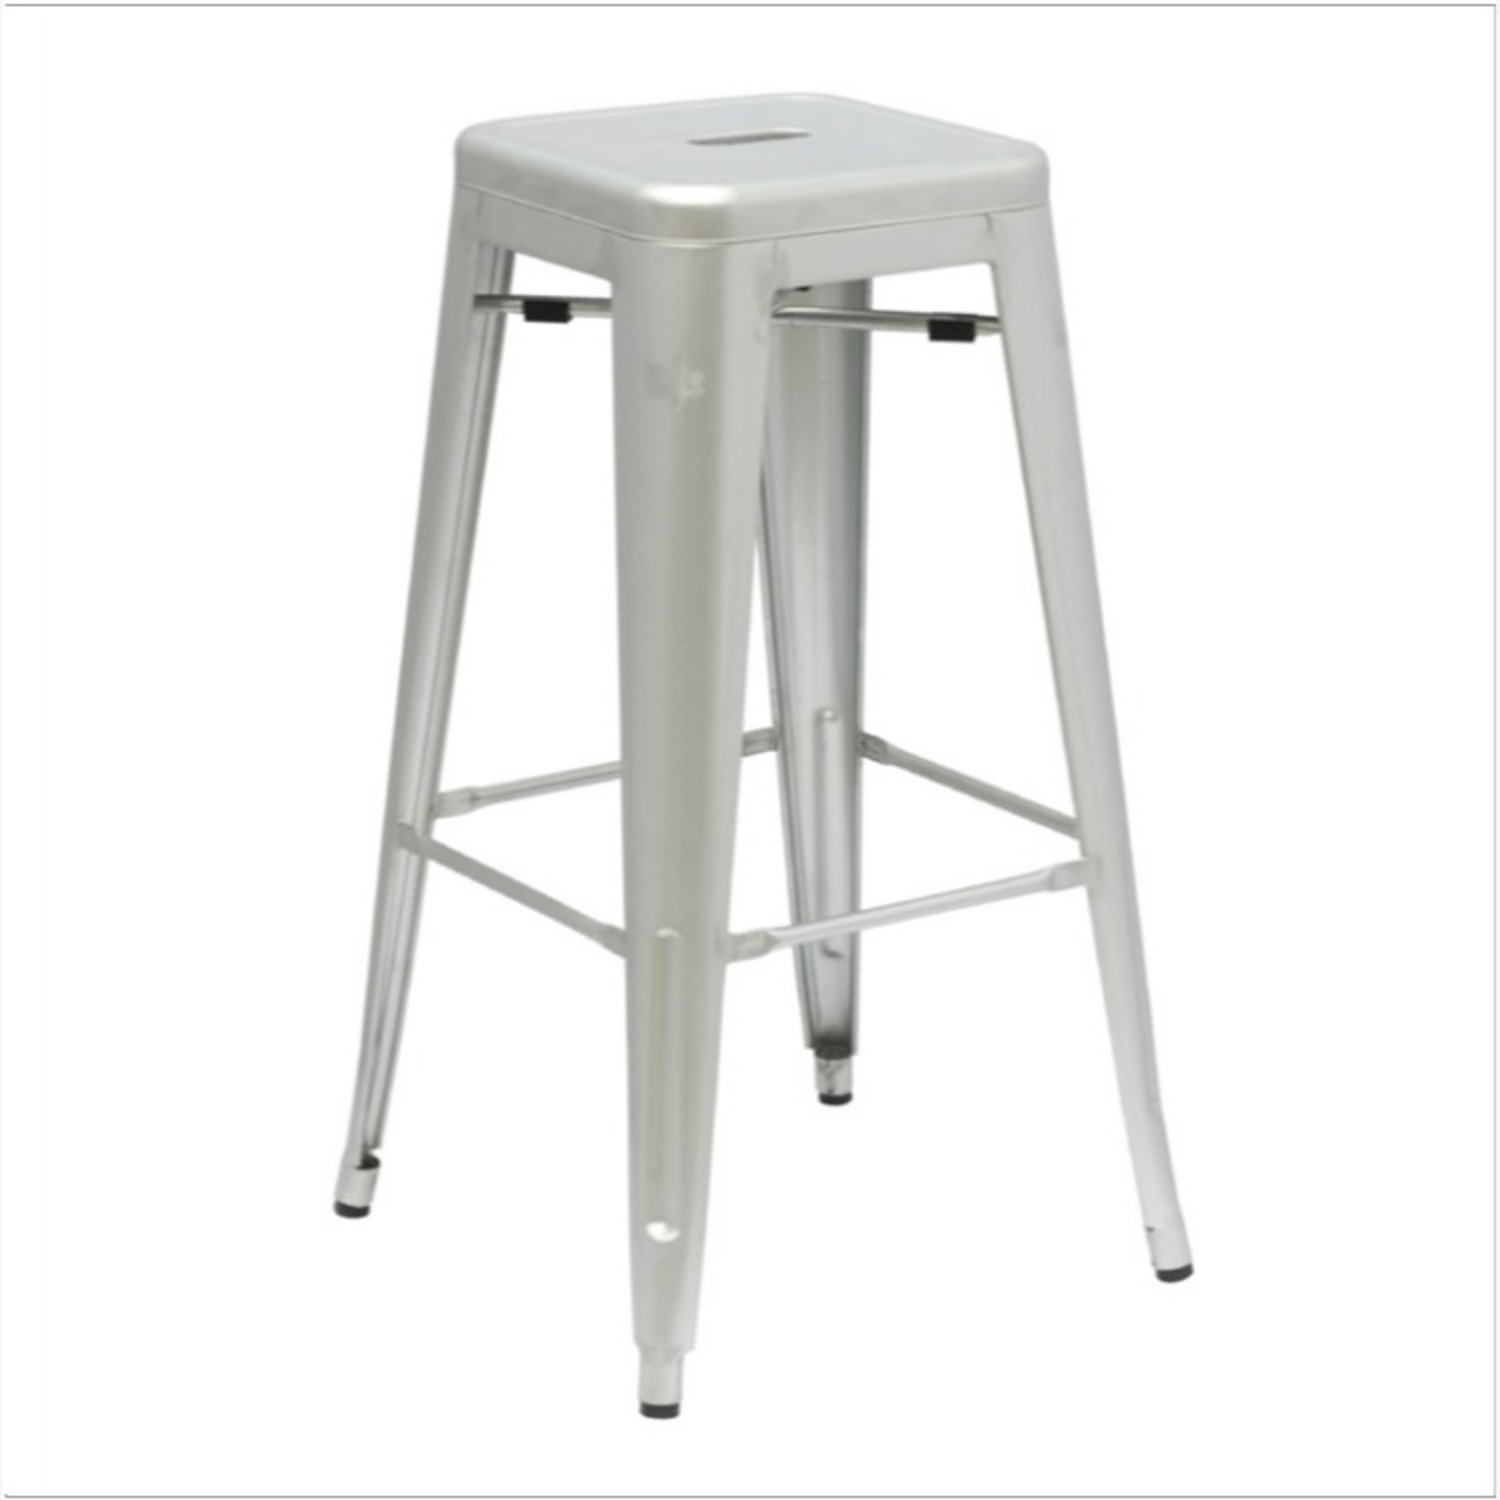 Contemporary Bar Stool In Silver Galvanized Steel - image-0